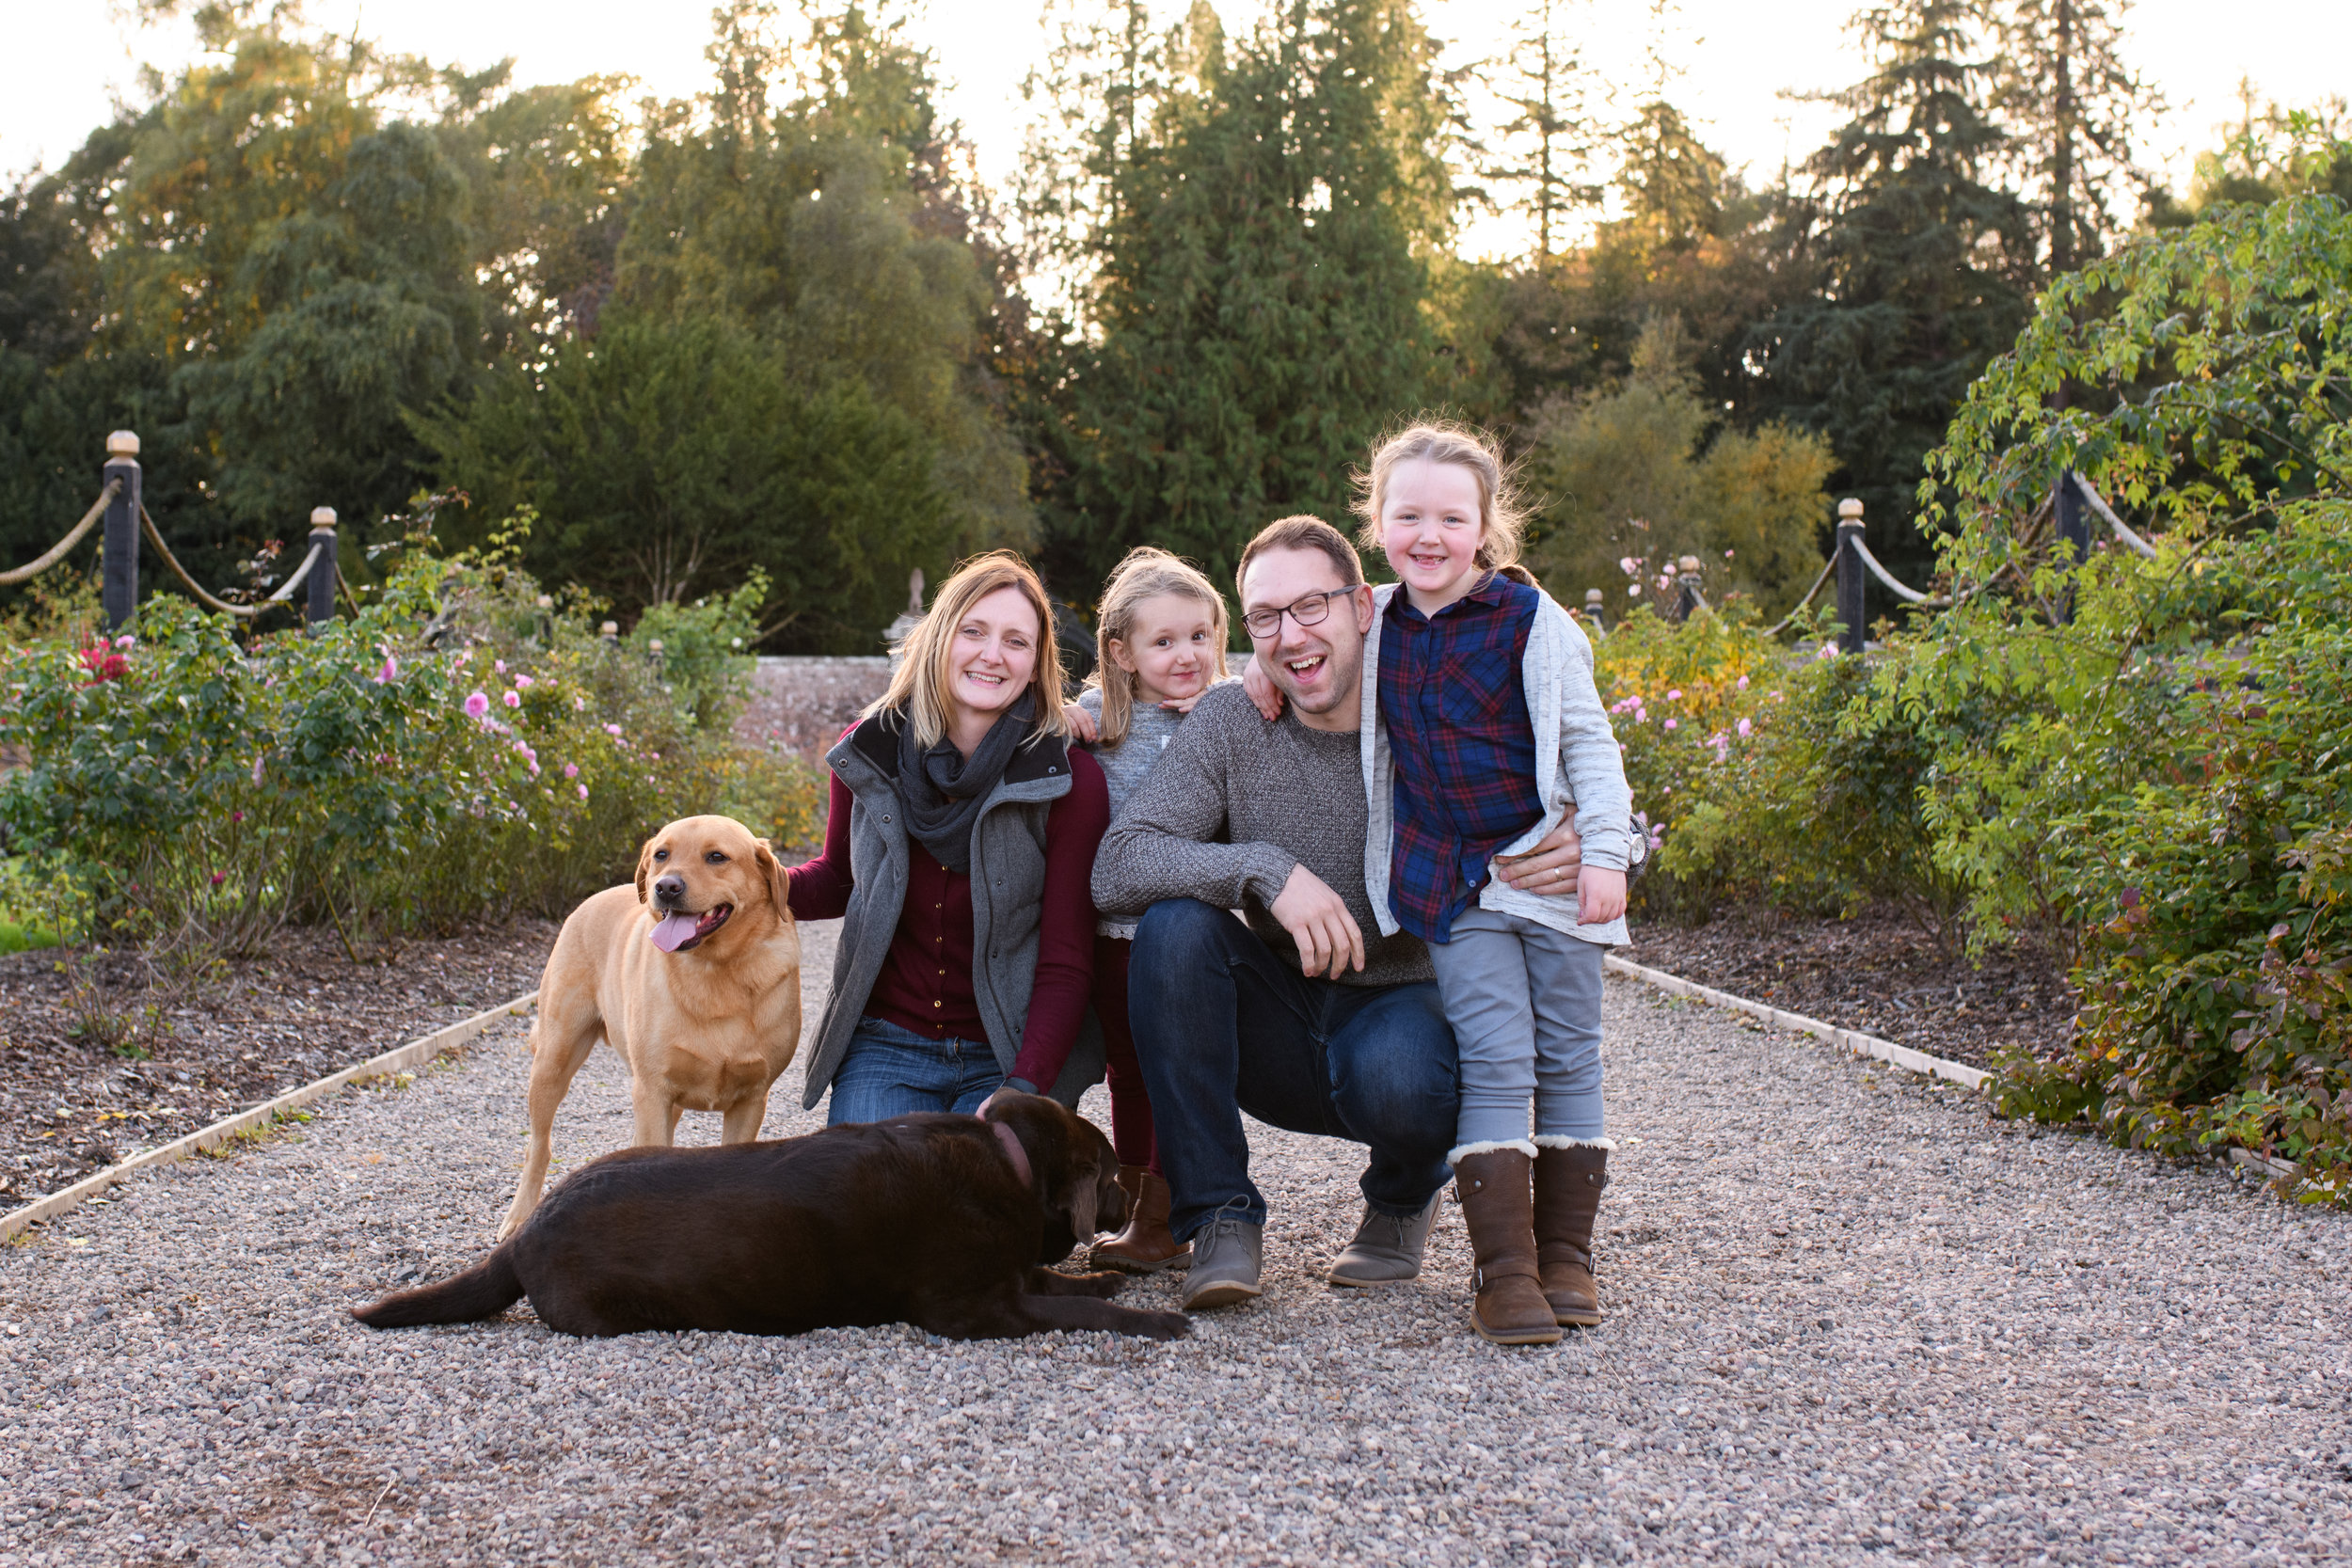 Family includes fury babies too! Walled Garden, Glamis Castle